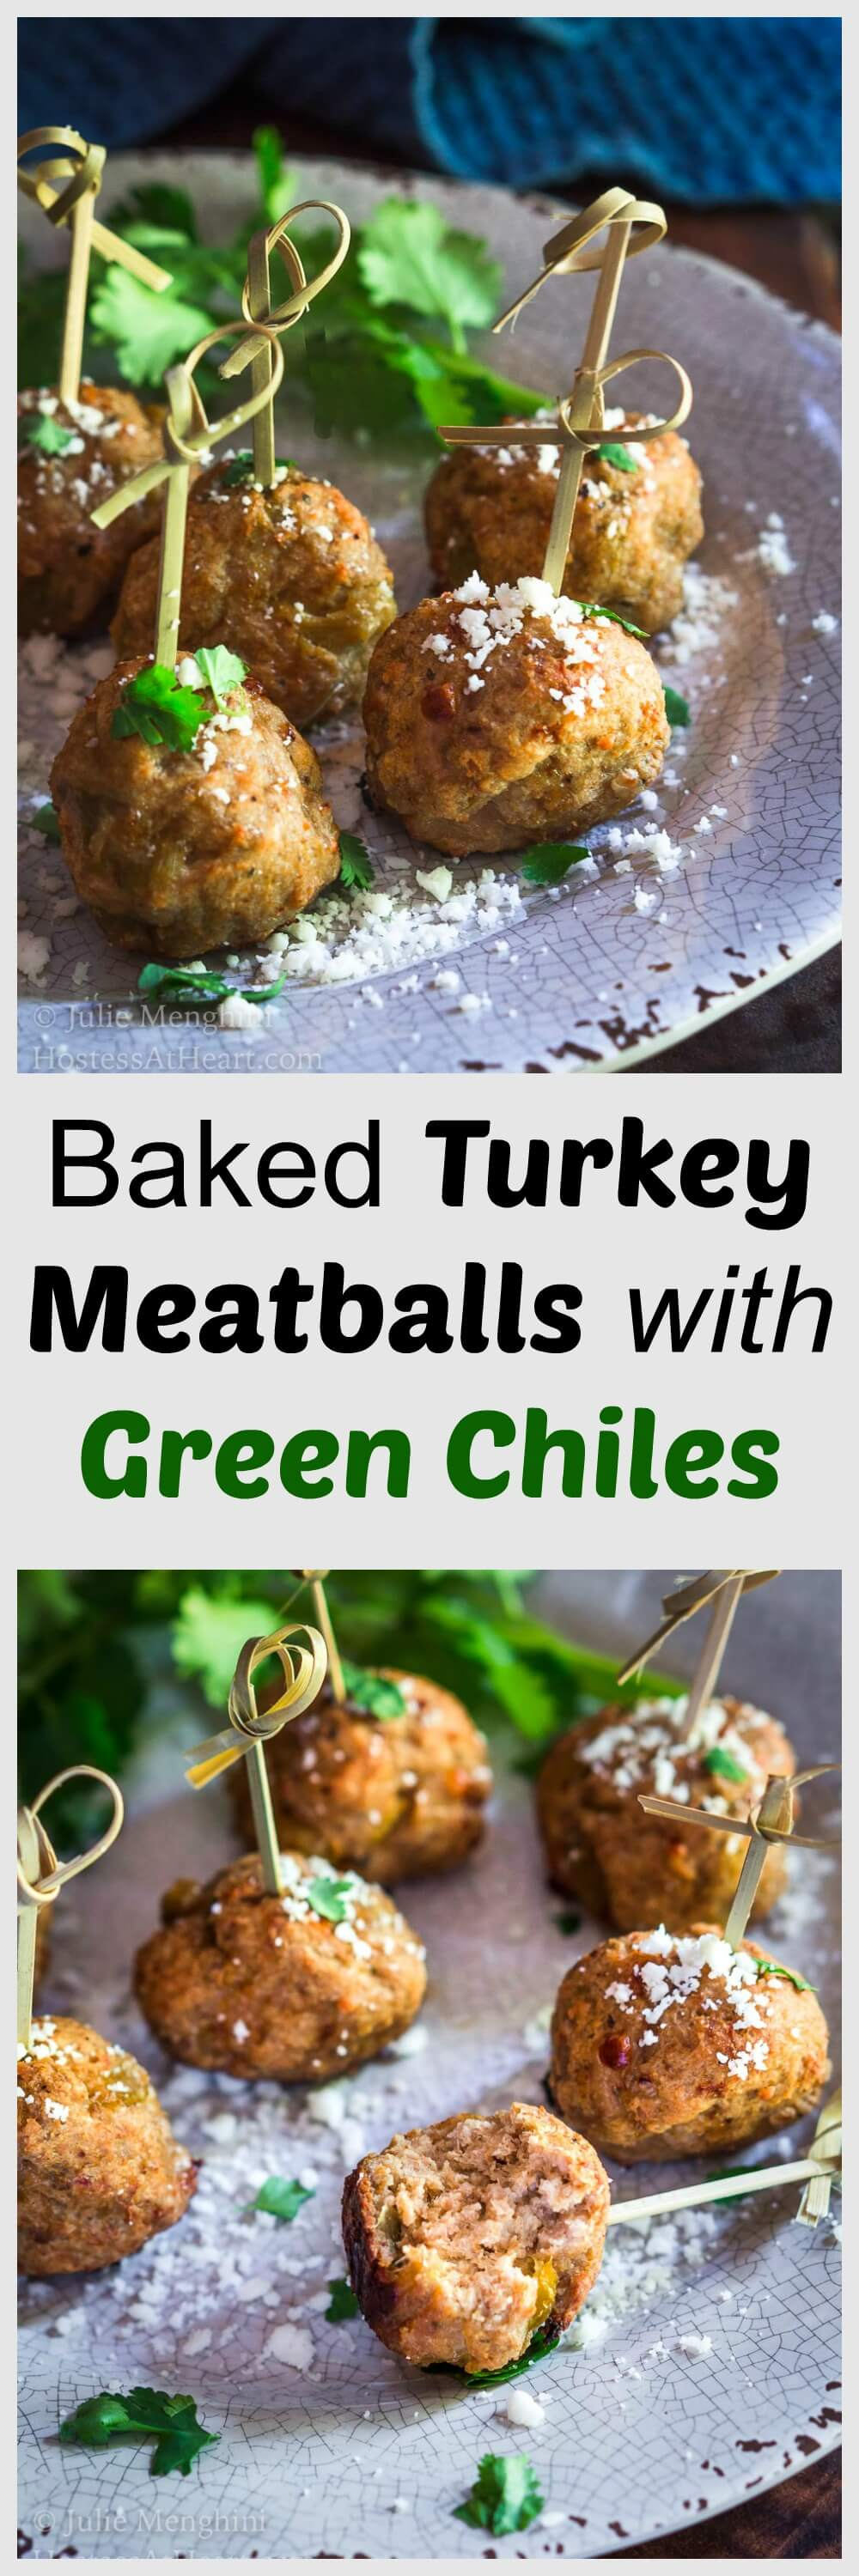 Baked Turkey Meatballs with Green Chiles are perfect as an appetizer, topping a southwest salad or even stuffed in a hoagie. They're perfect for any time of year but especially tailgating! | HostessAtHeart.com | turkeymeatballs | BakedMeatballs #tailgatingSnacks #recipe